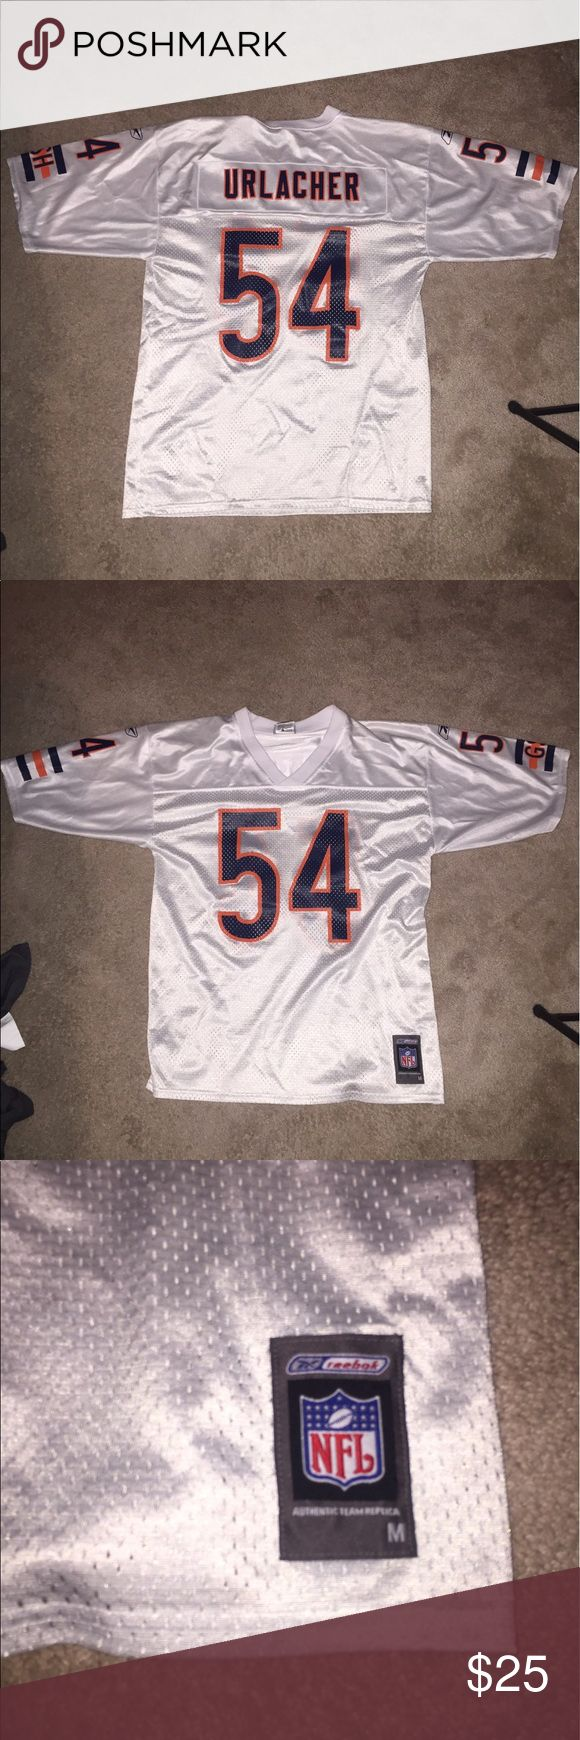 Chicago bears football jersey Dope Chicago bears football jersey in practically brand new condition! Has the player Brian urlacher on it! And size medium Reebok Shirts Tees - Short Sleeve